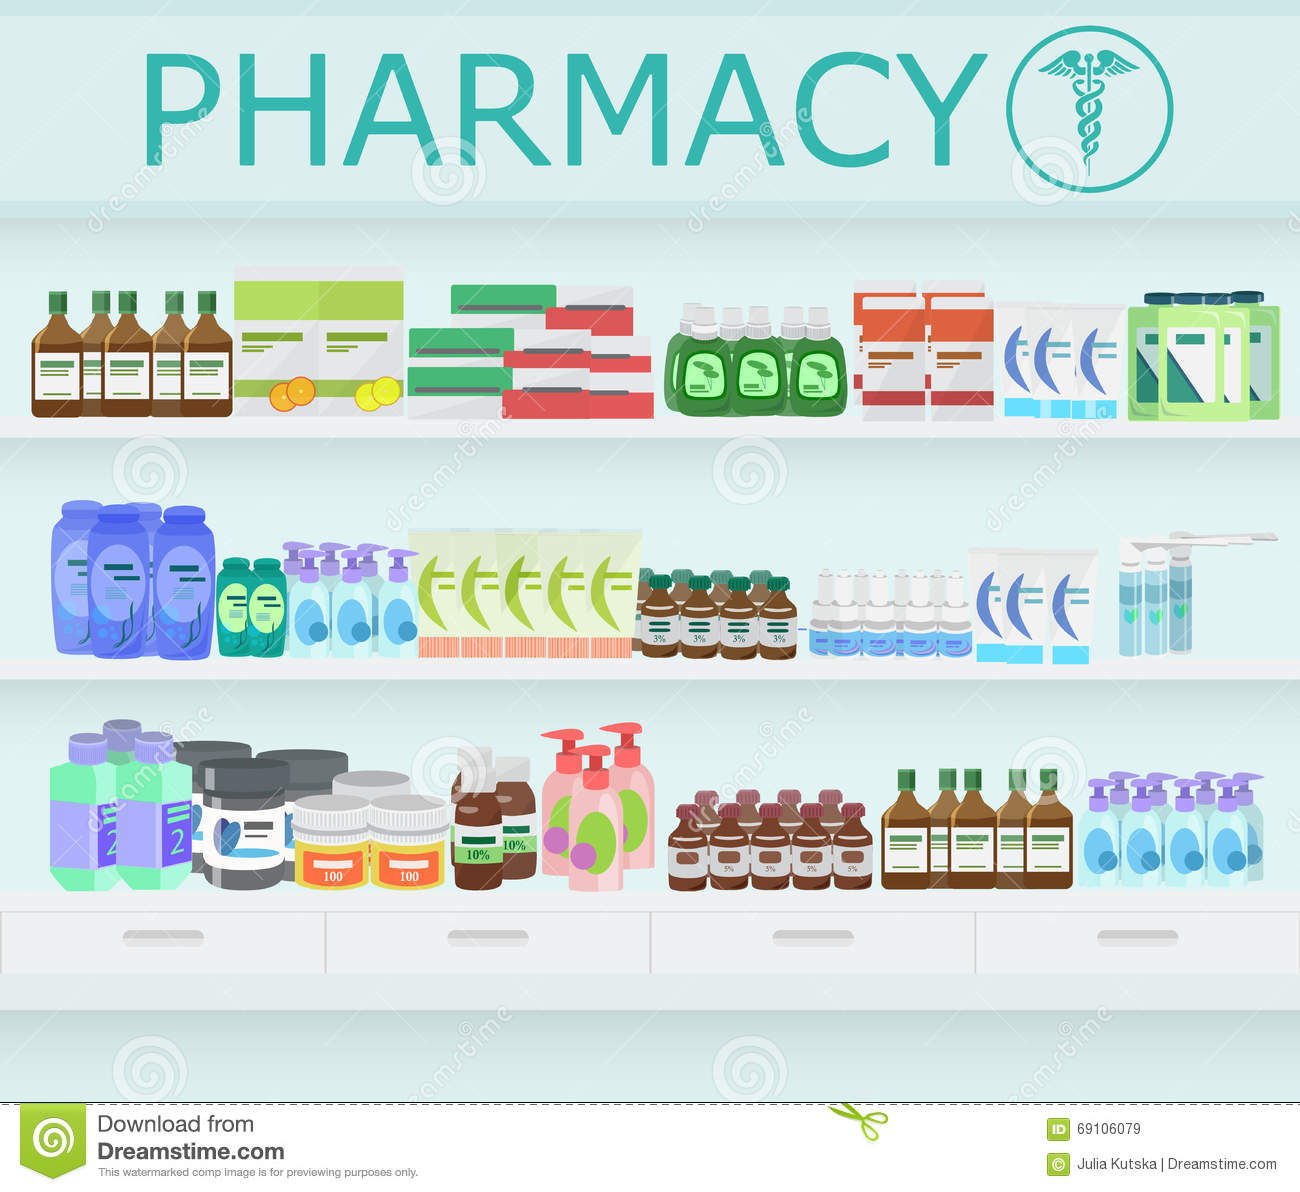 Online Pharmacy - Cheap Medications No Prescription